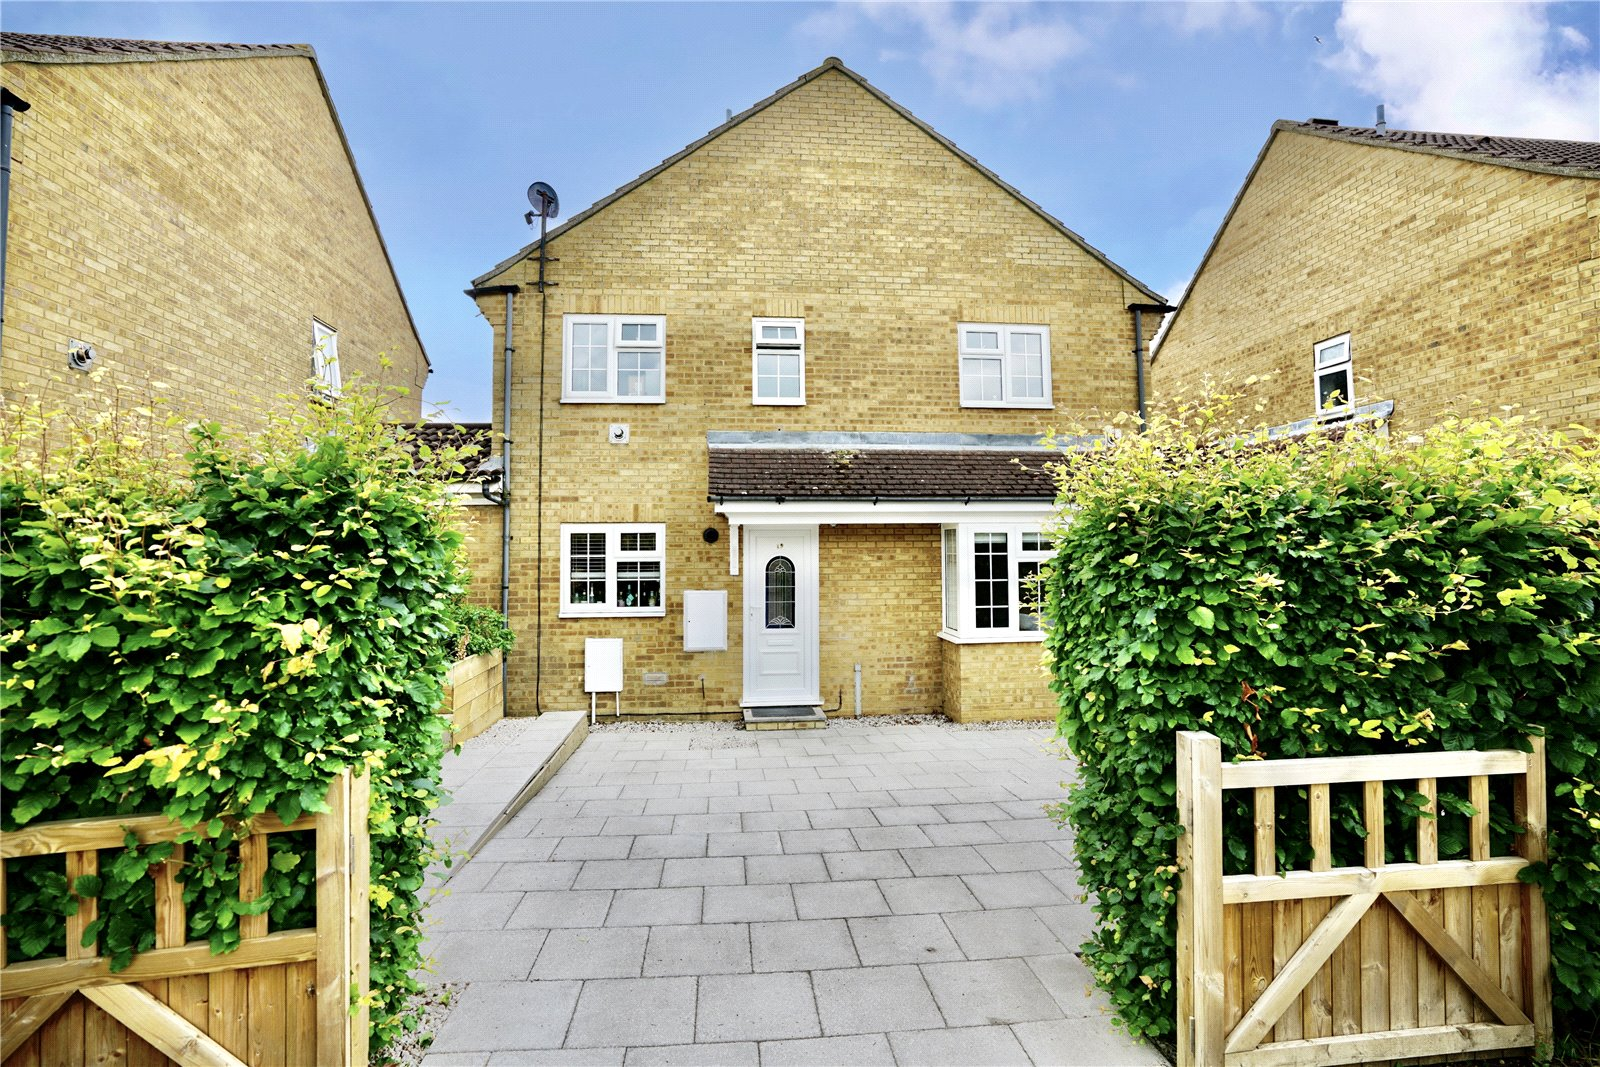 2 bed house for sale in Eaton Socon, Chawston Close, PE19 8QB - Property Image 1